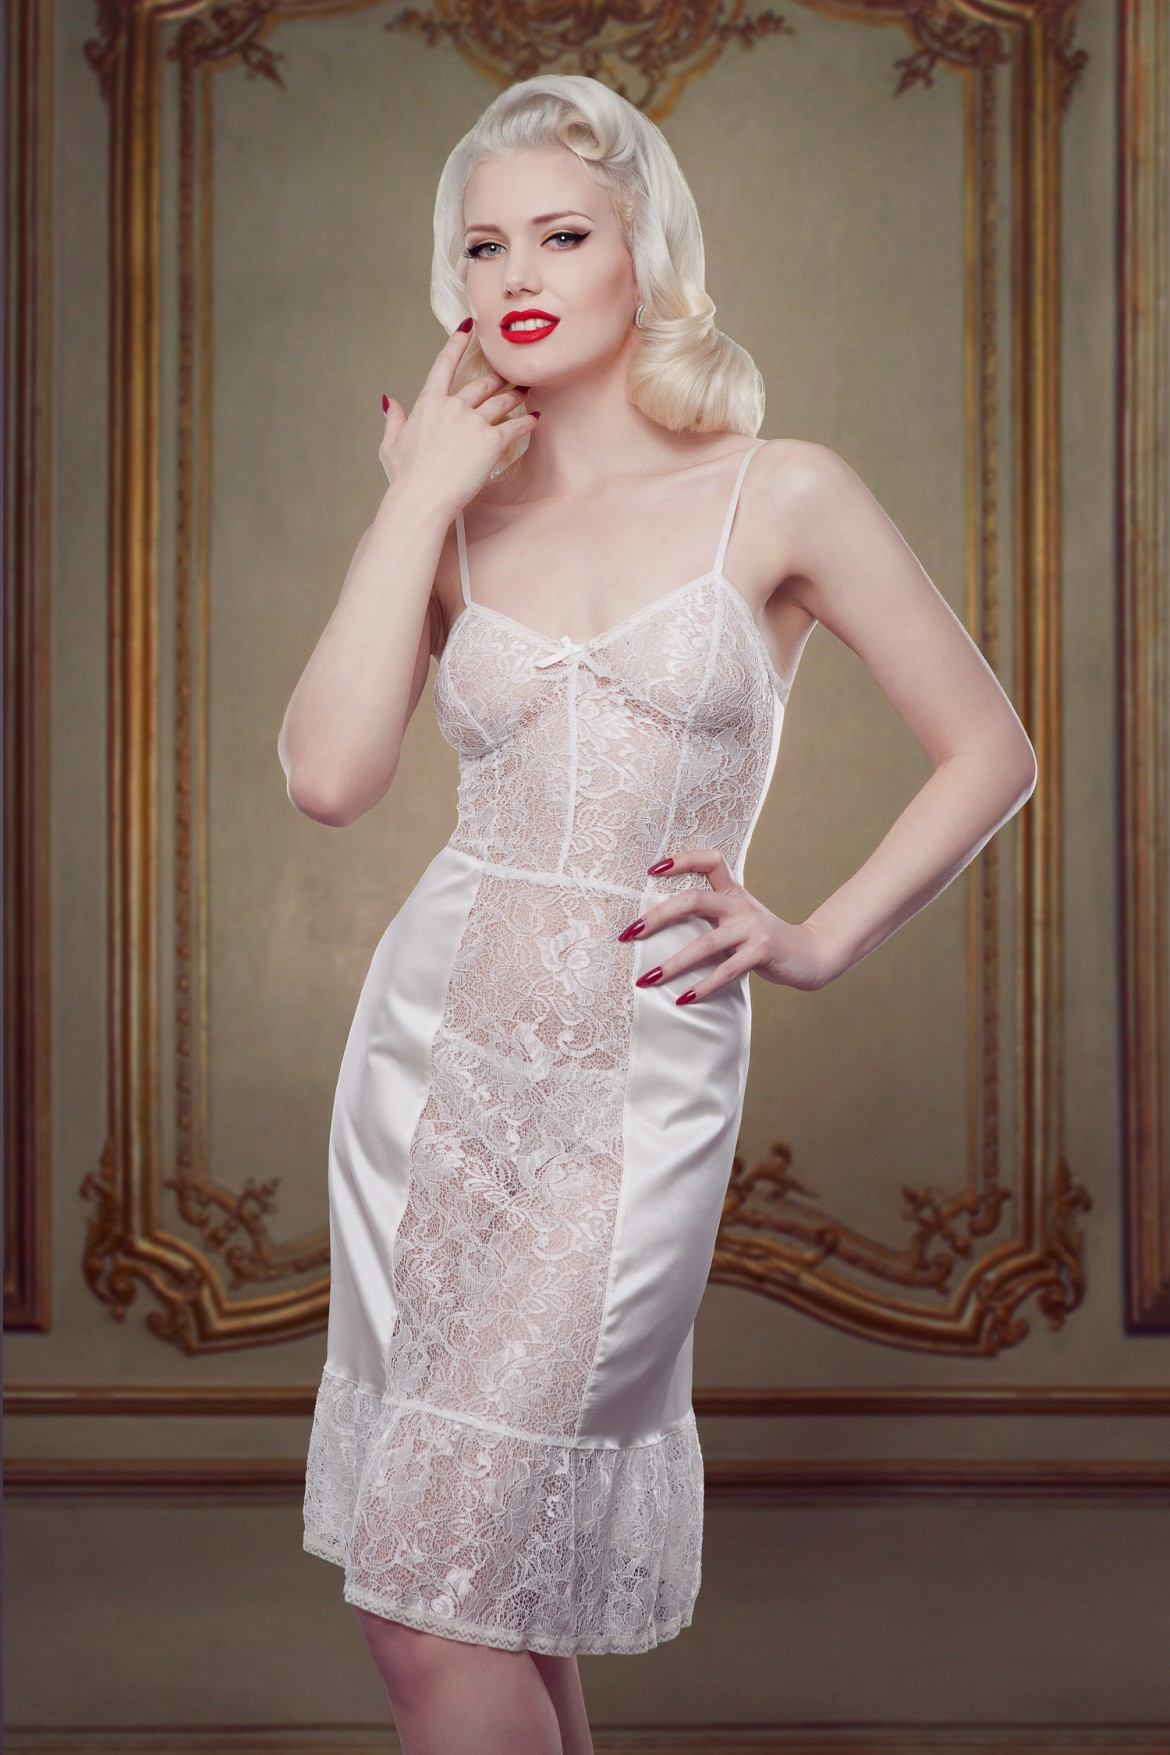 Betty Bridal Nell Dress Slip Photography - Iberian Black Arts Model - Frankii Wilde